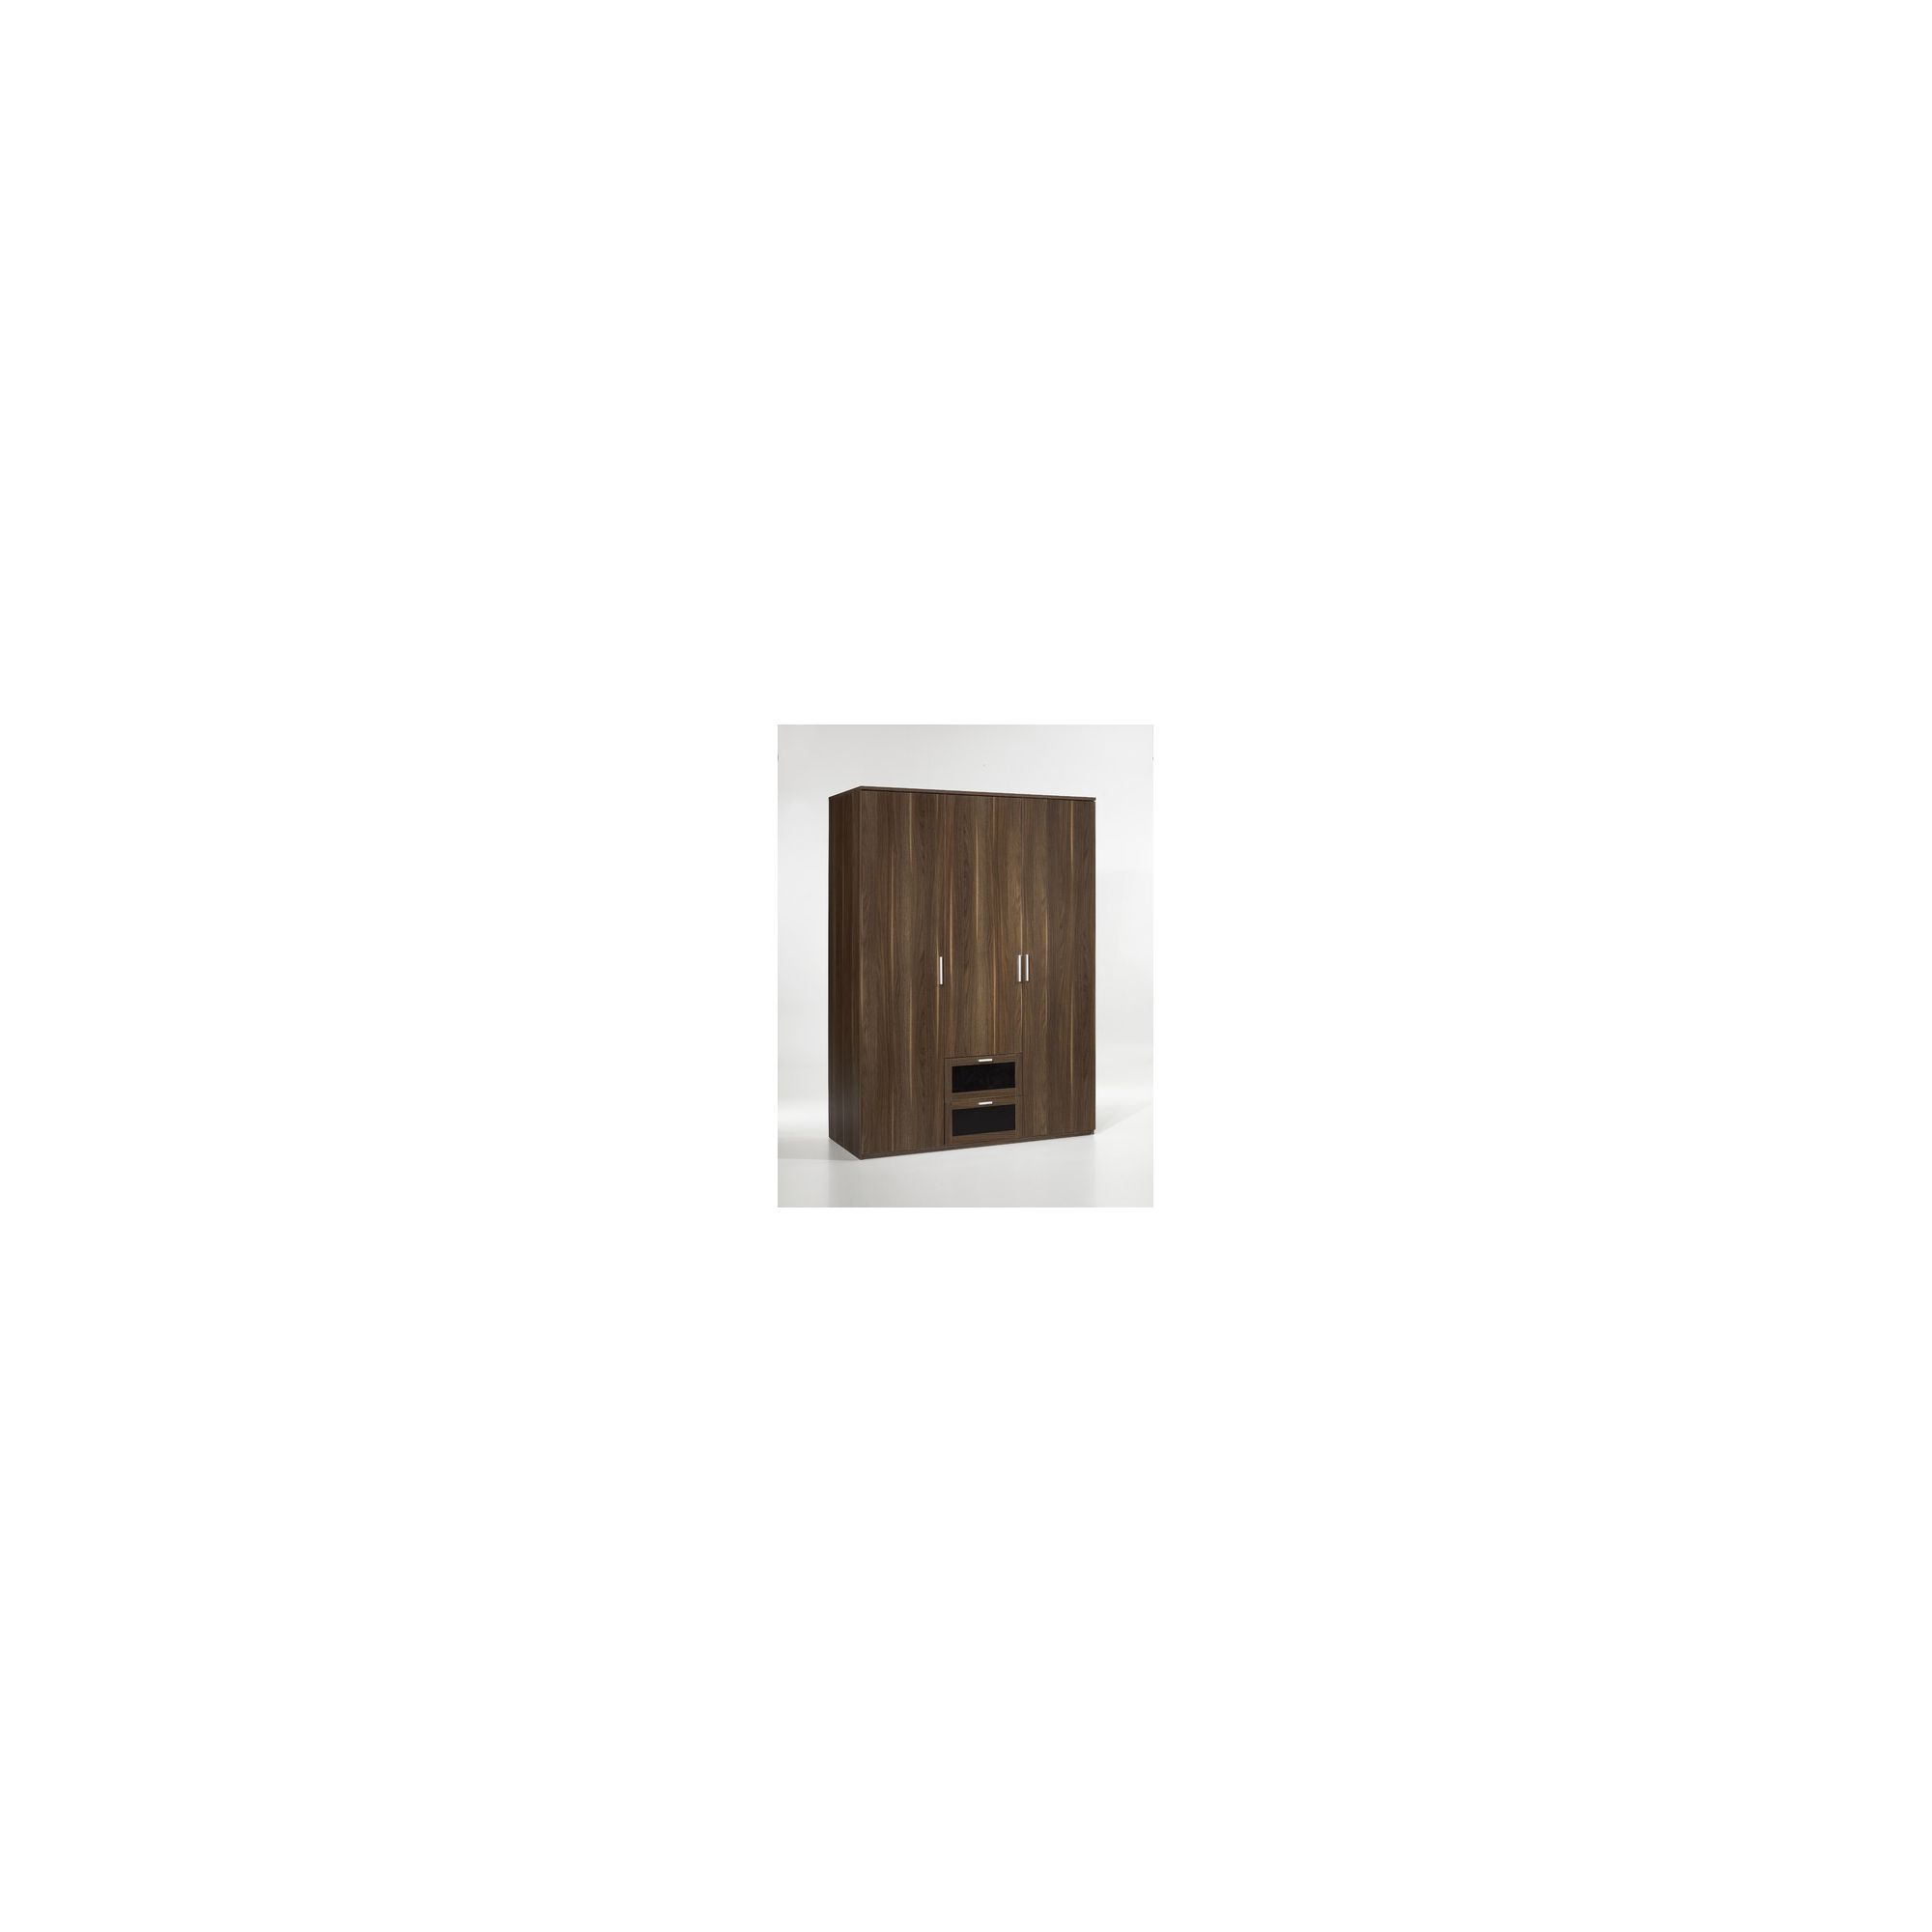 Tvilum New York Three Door Wardrobe in Dark Walnut at Tesco Direct